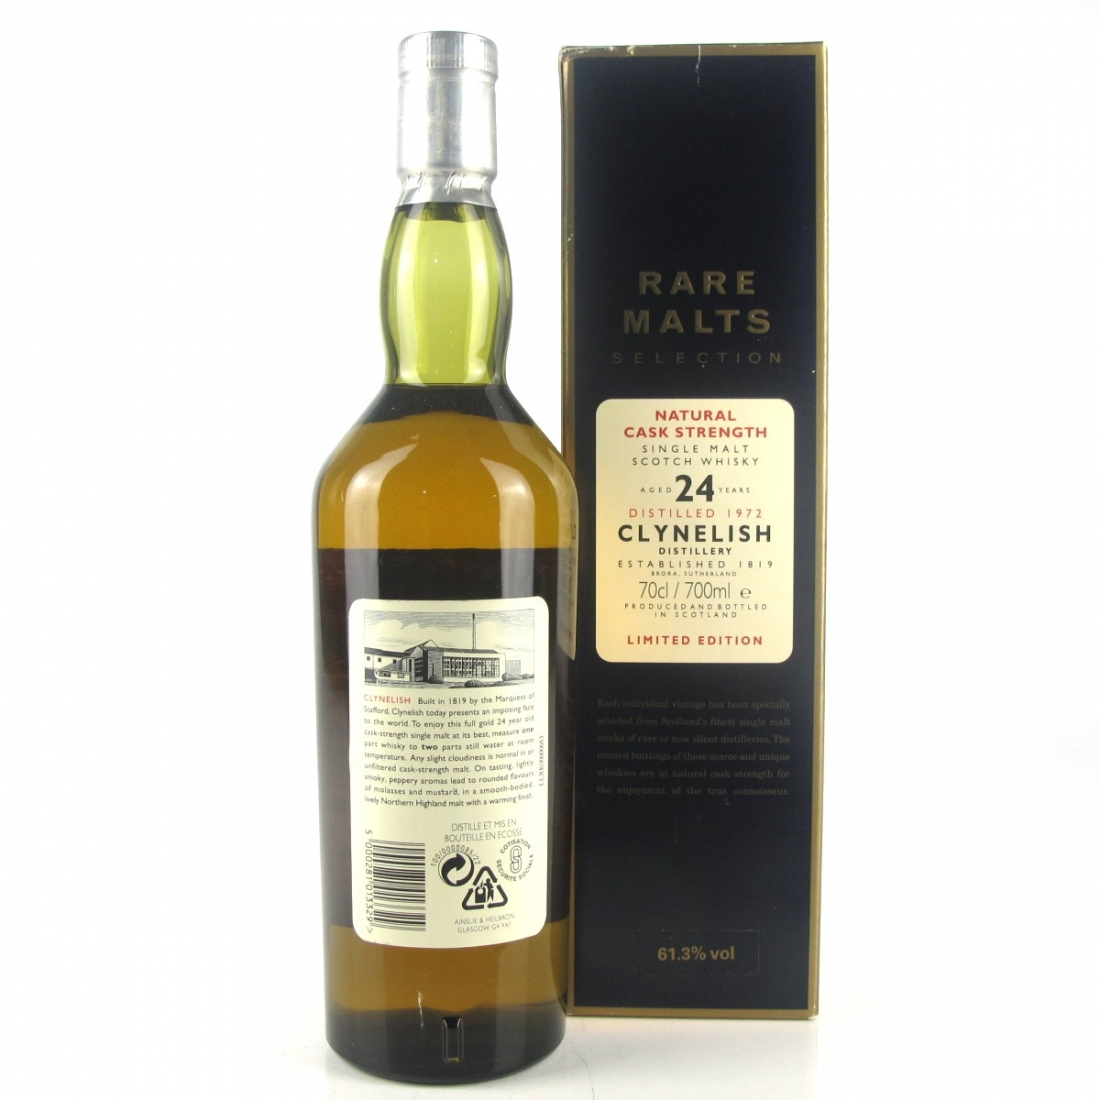 Clynelish 1972 Rare Malt 24 Year Old / 61.3%